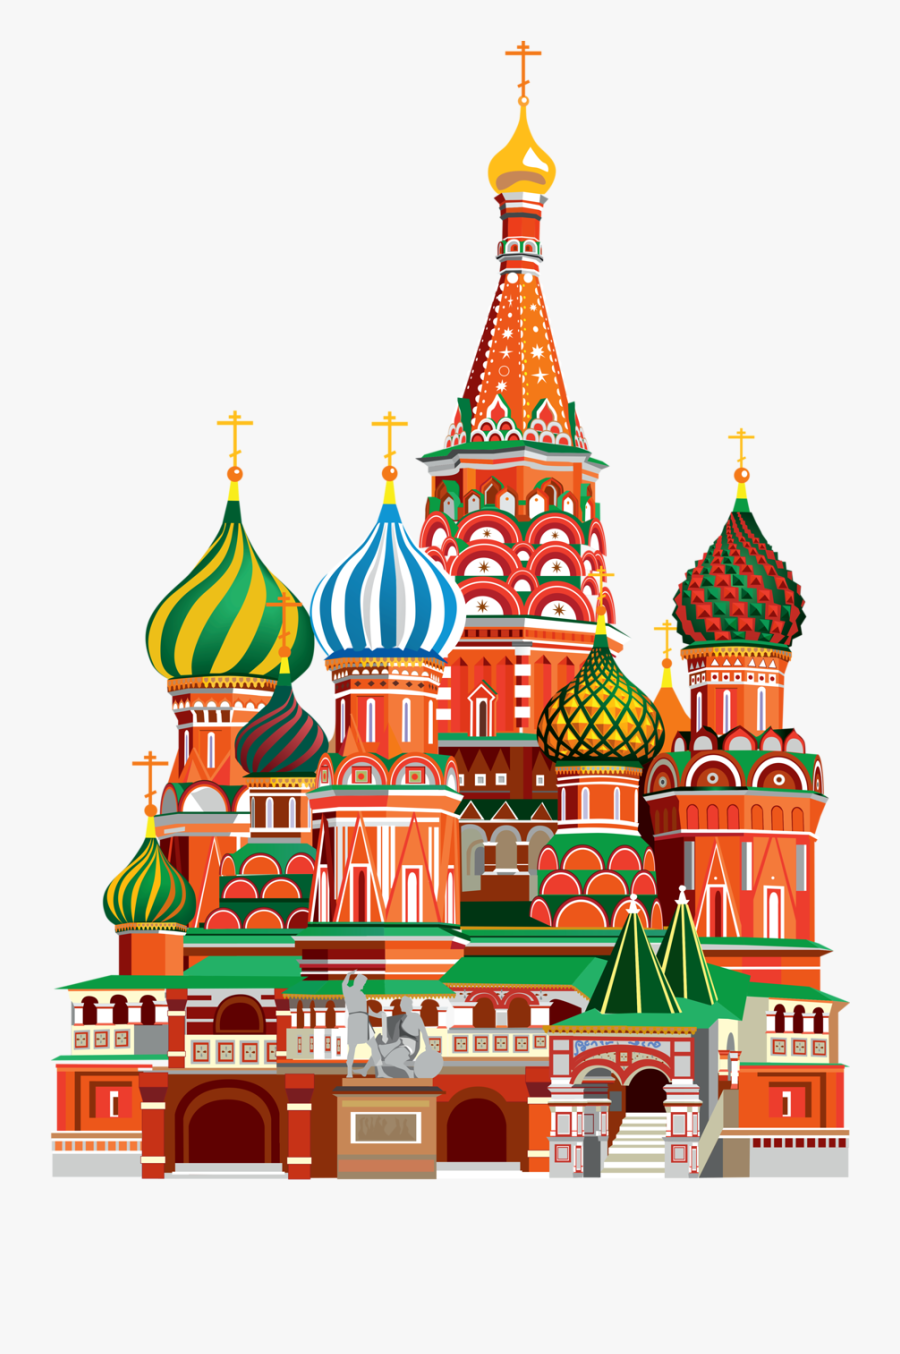 Transparent Cathedral Png - Saint Basil's Cathedral Png, Transparent Clipart